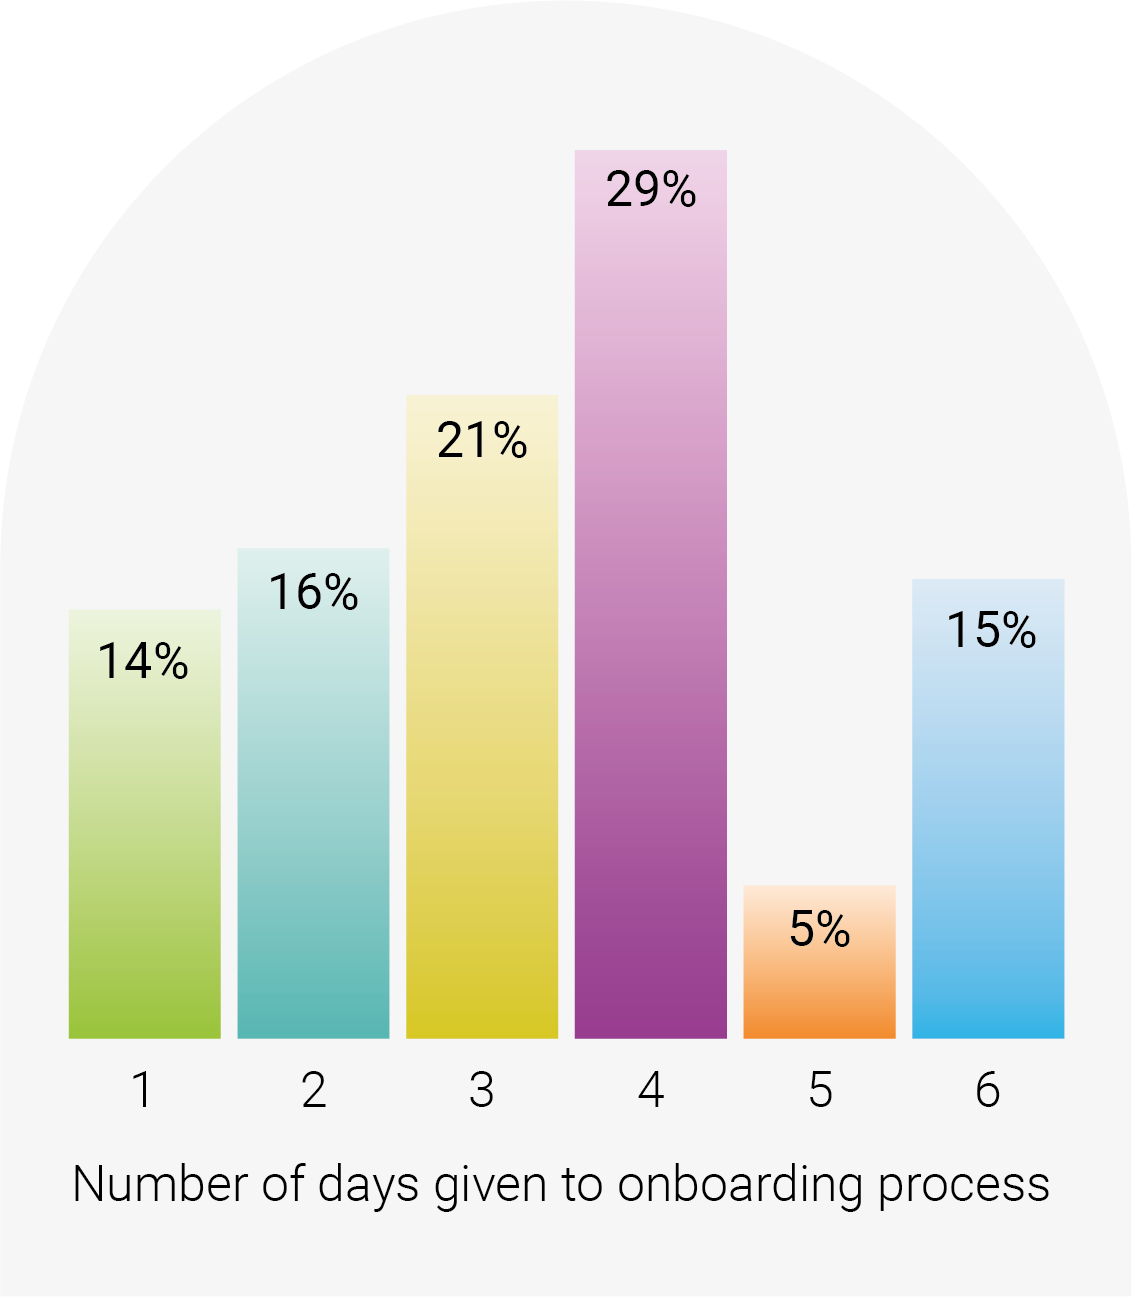 Number of days given to onboarding process